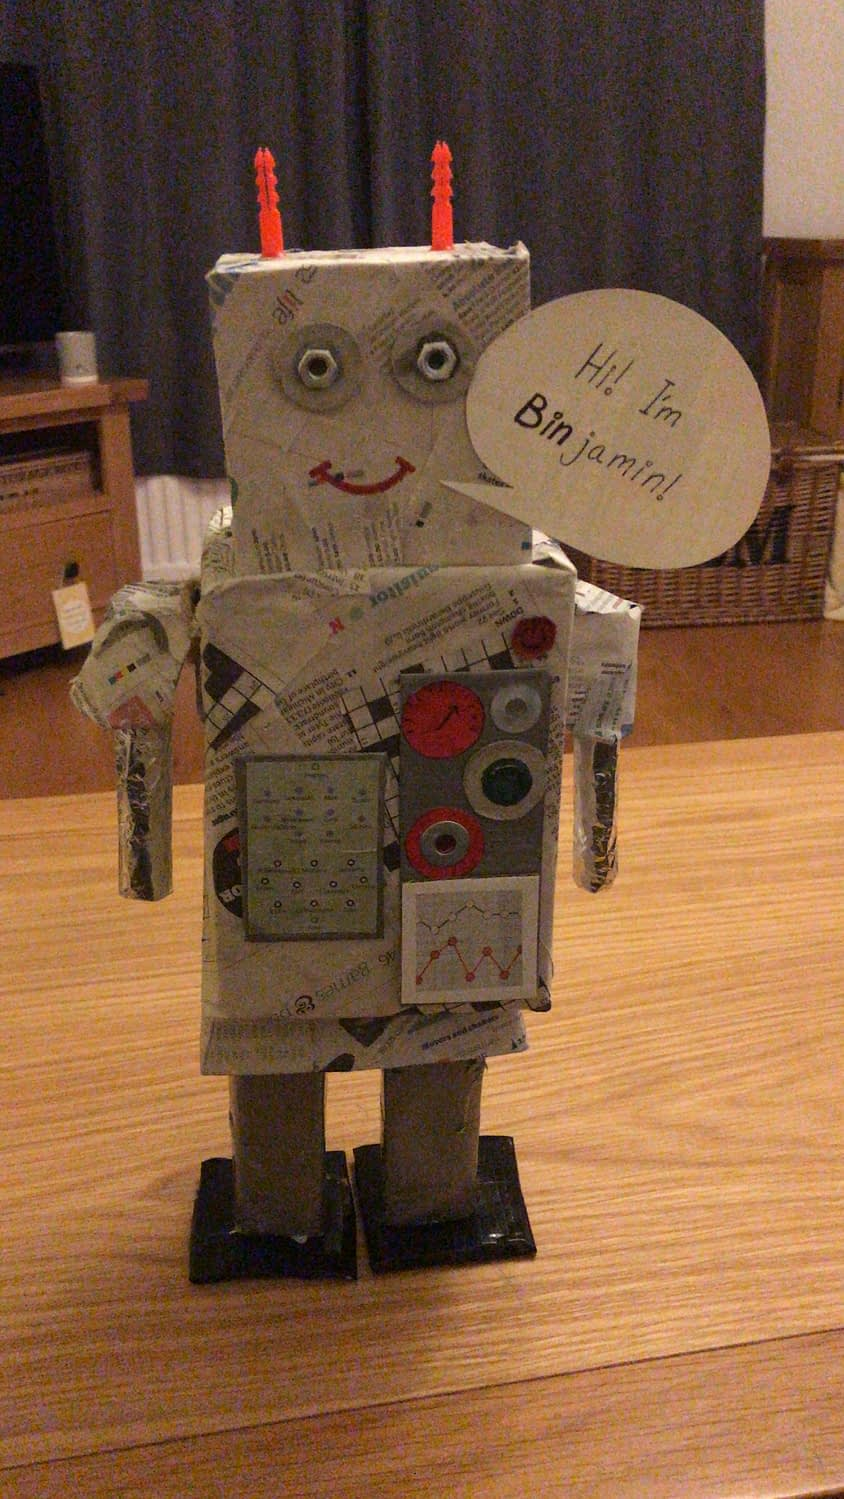 A robot made from recycled items found around the house